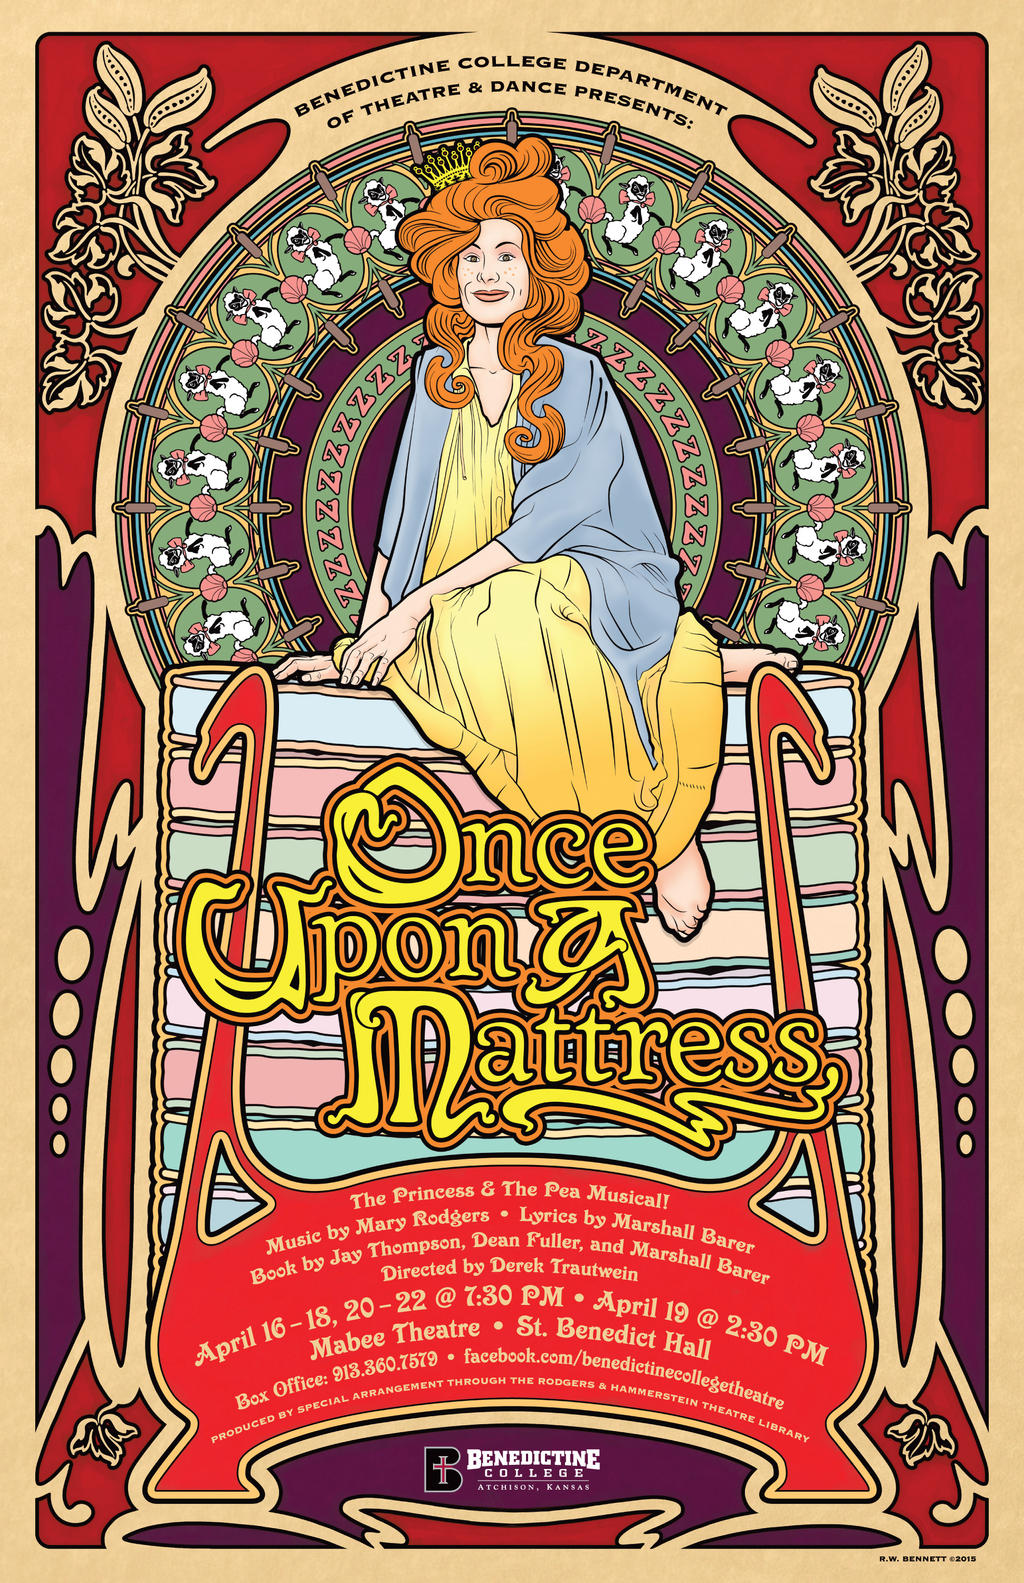 how to build a bed for once upon a mattress